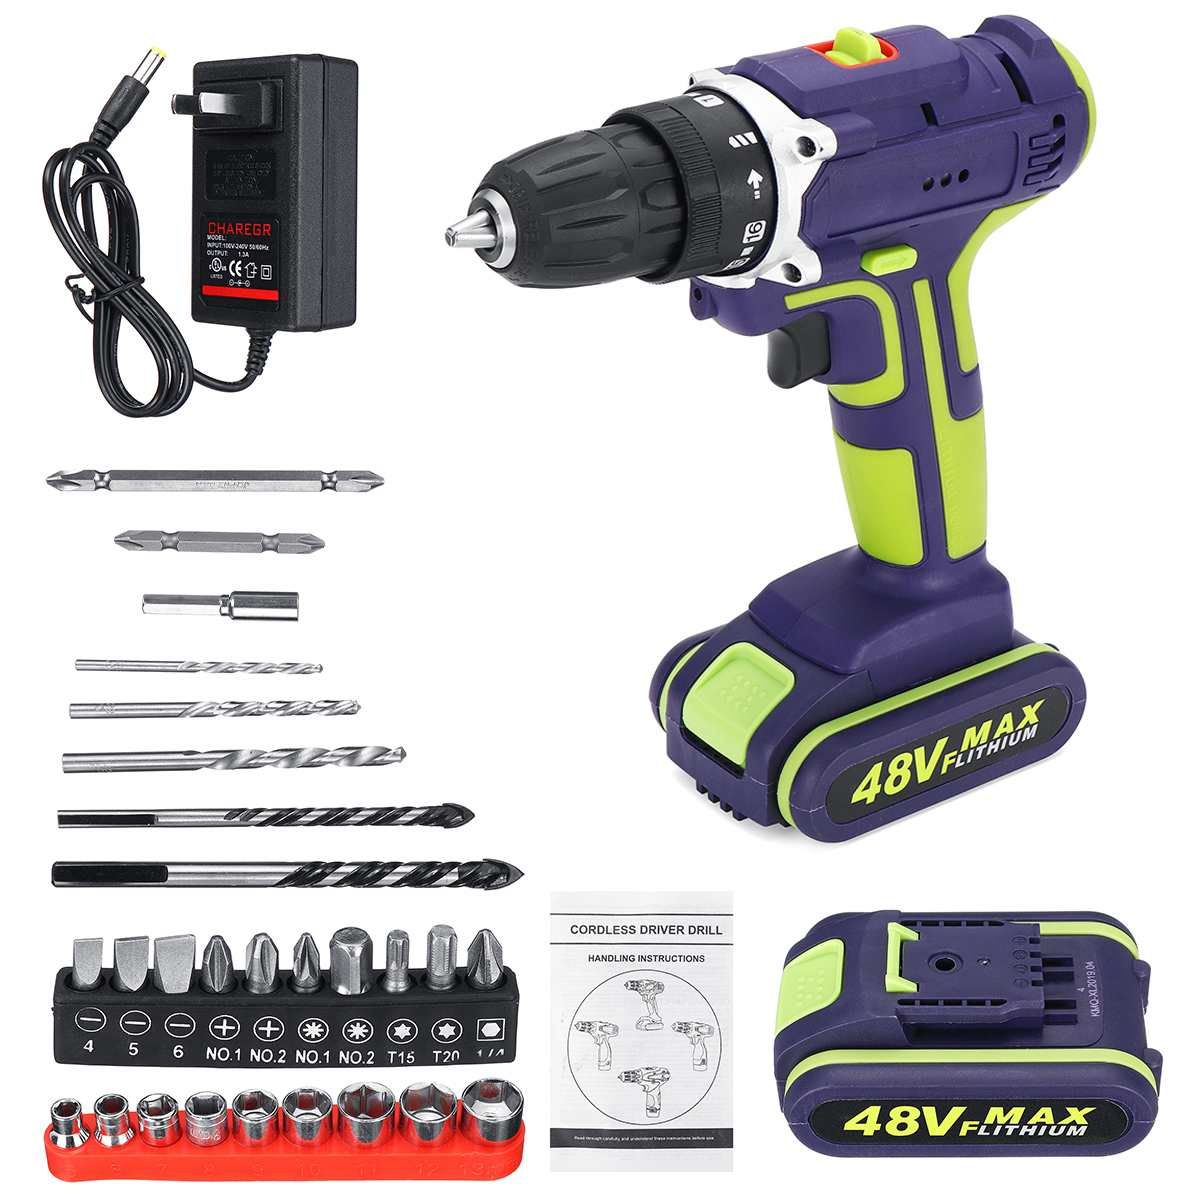 Professional 48Vf Cordless Drill Daul-Speed Adjustment LED Lighting Large Capacity Battery 50Nm 16+1 Torque 28pcs Accessories